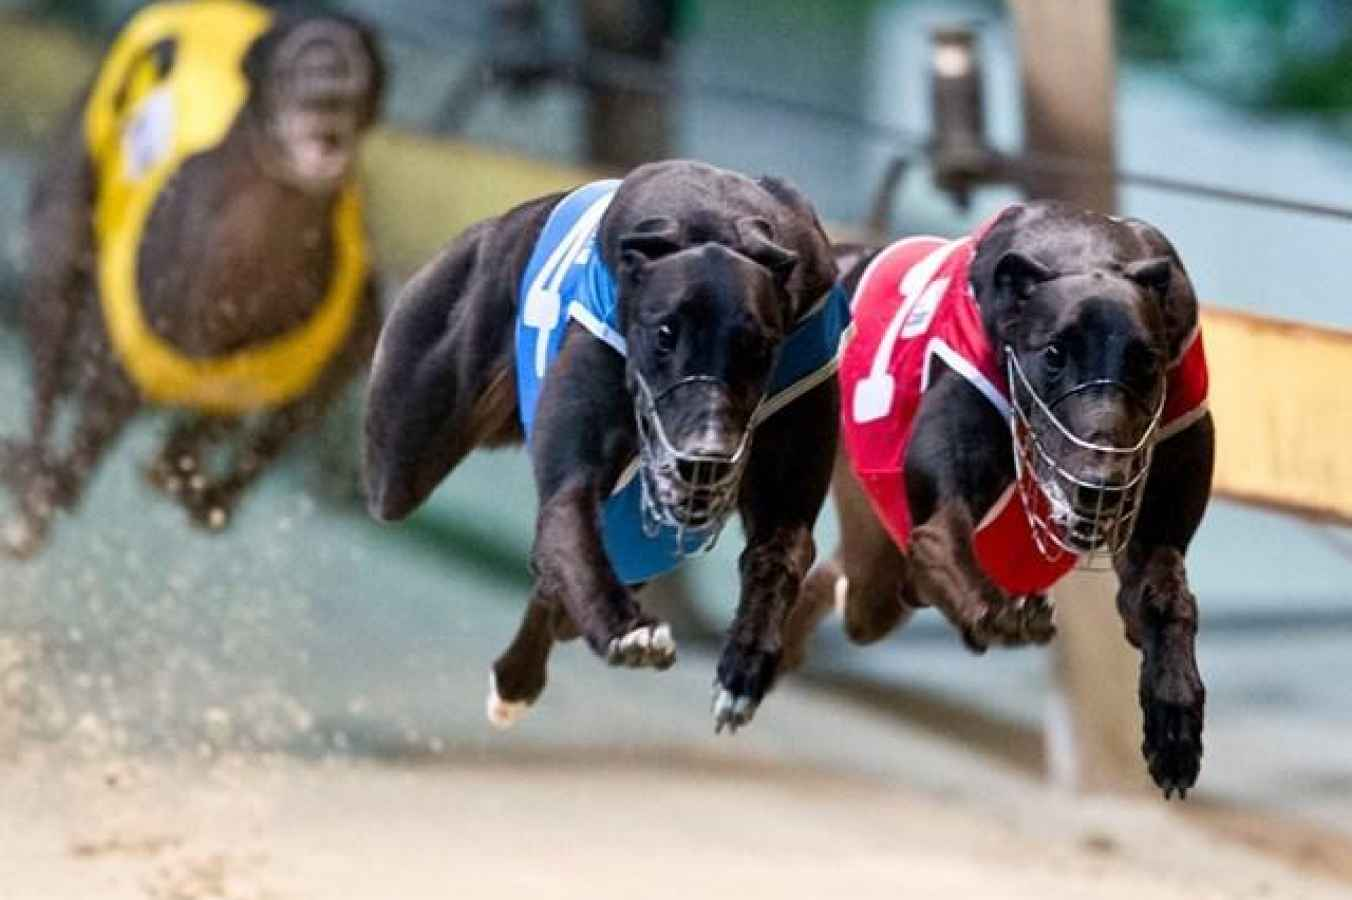 Plastic Bag Stops Greyhound Race